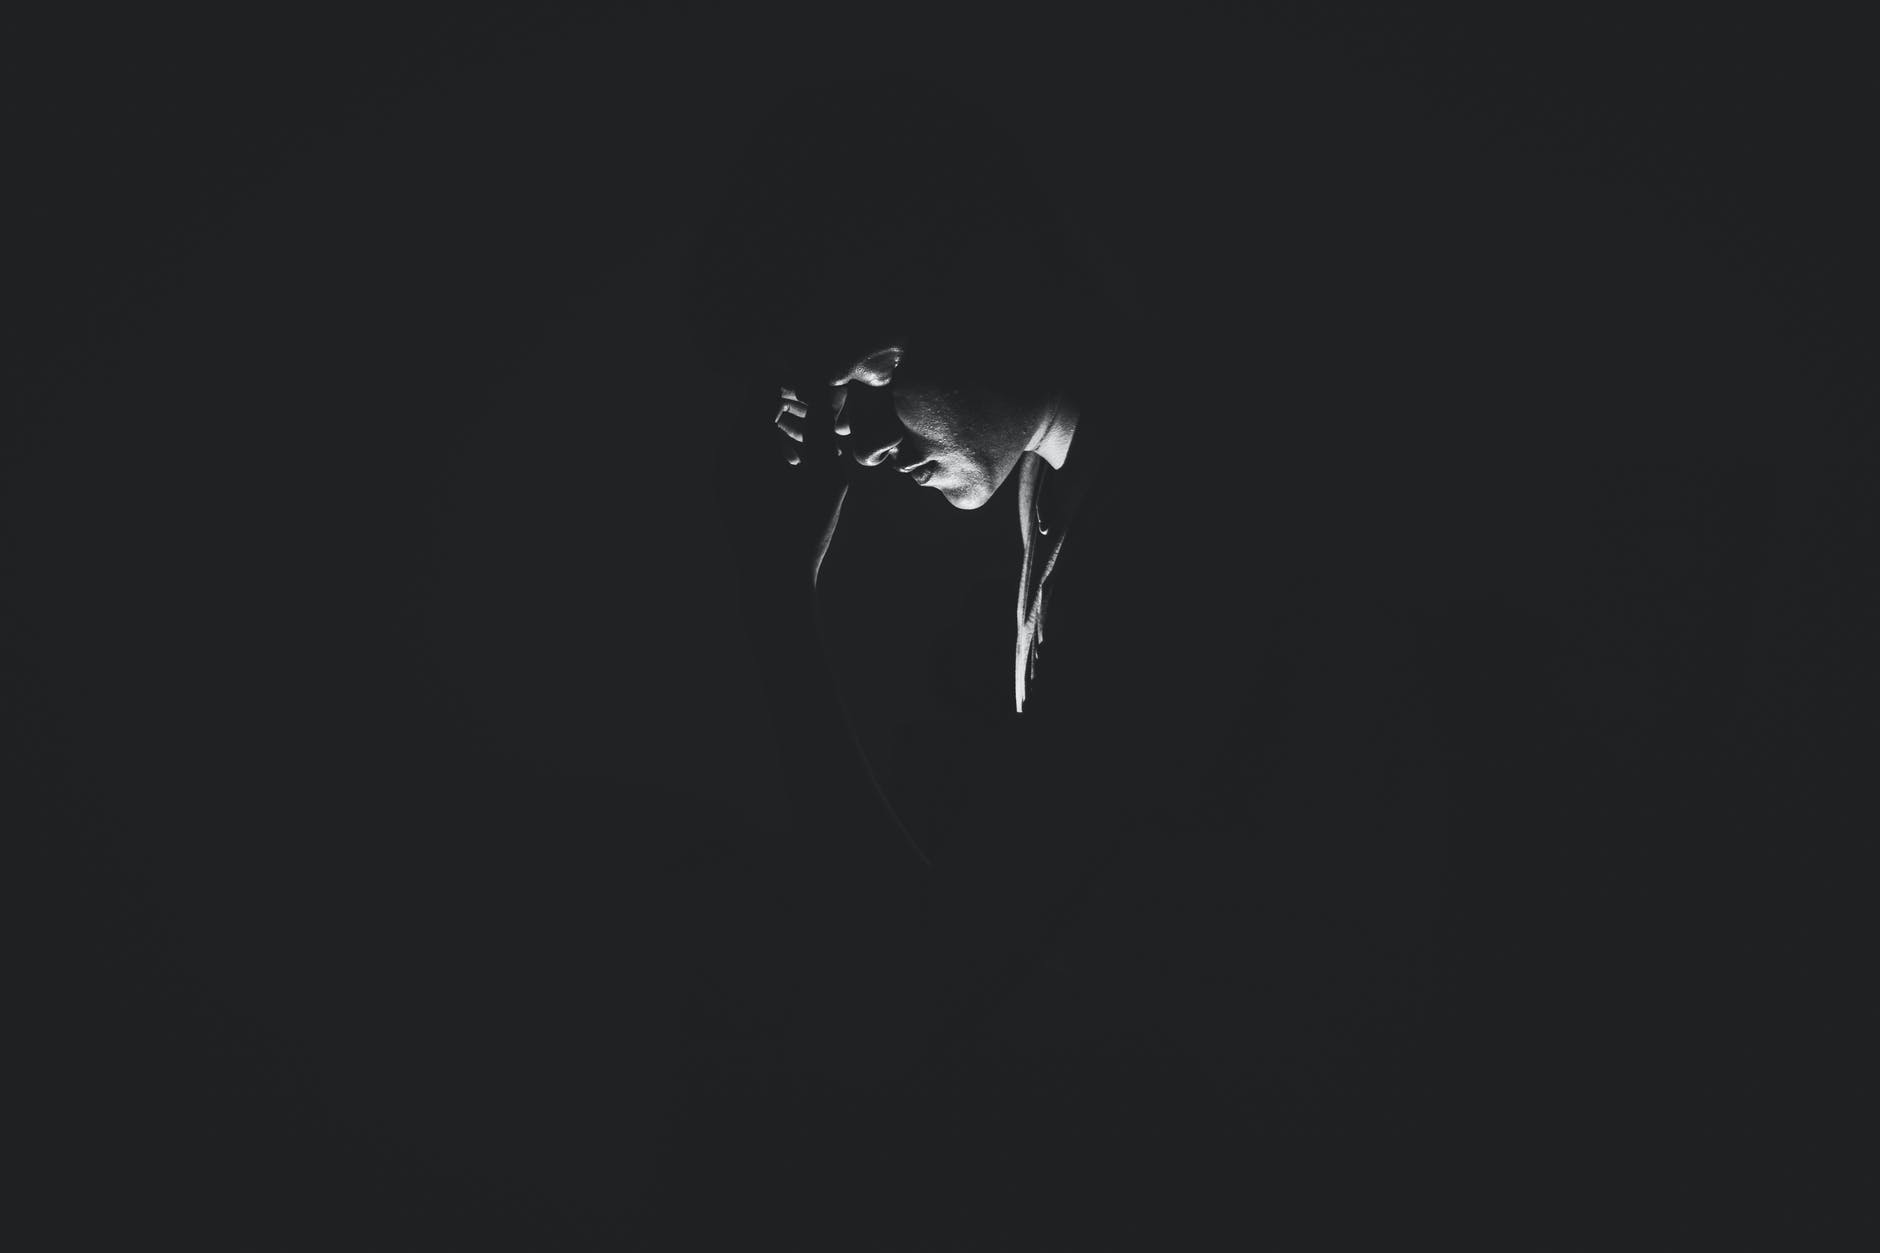 monochrome photography of person on dark room